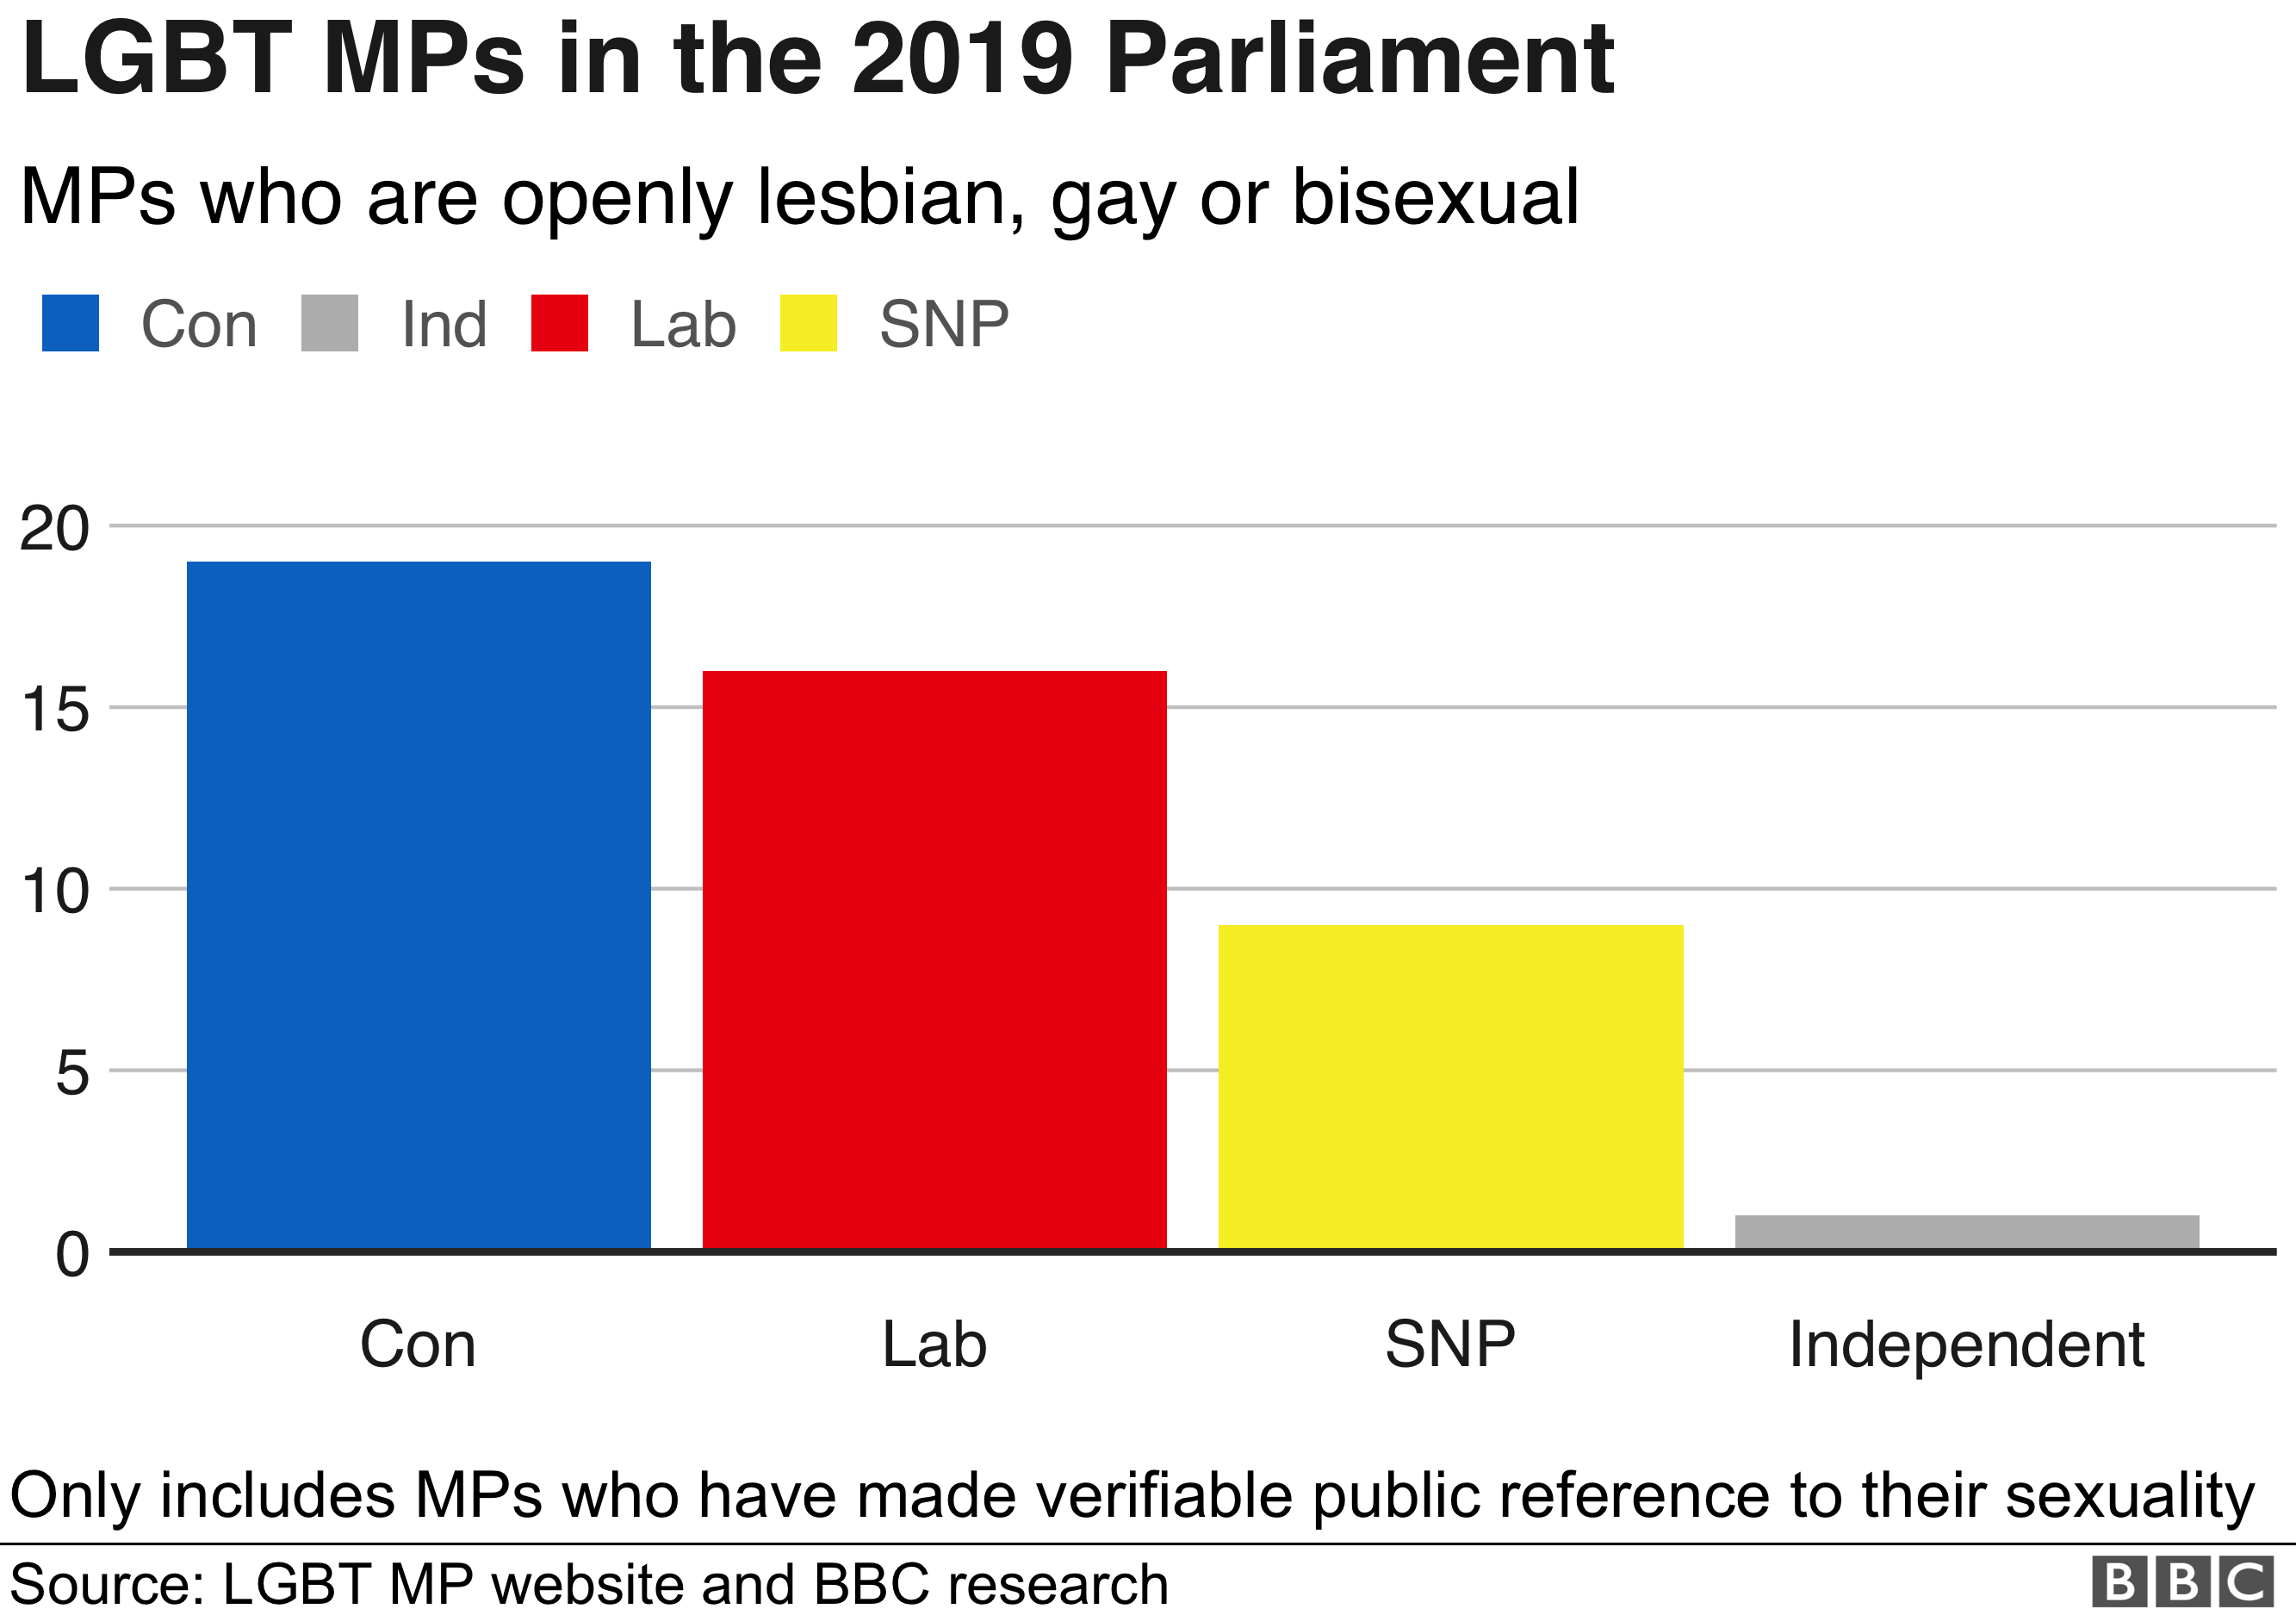 Bar chart of gay, lesbian or bisexual MPs by party